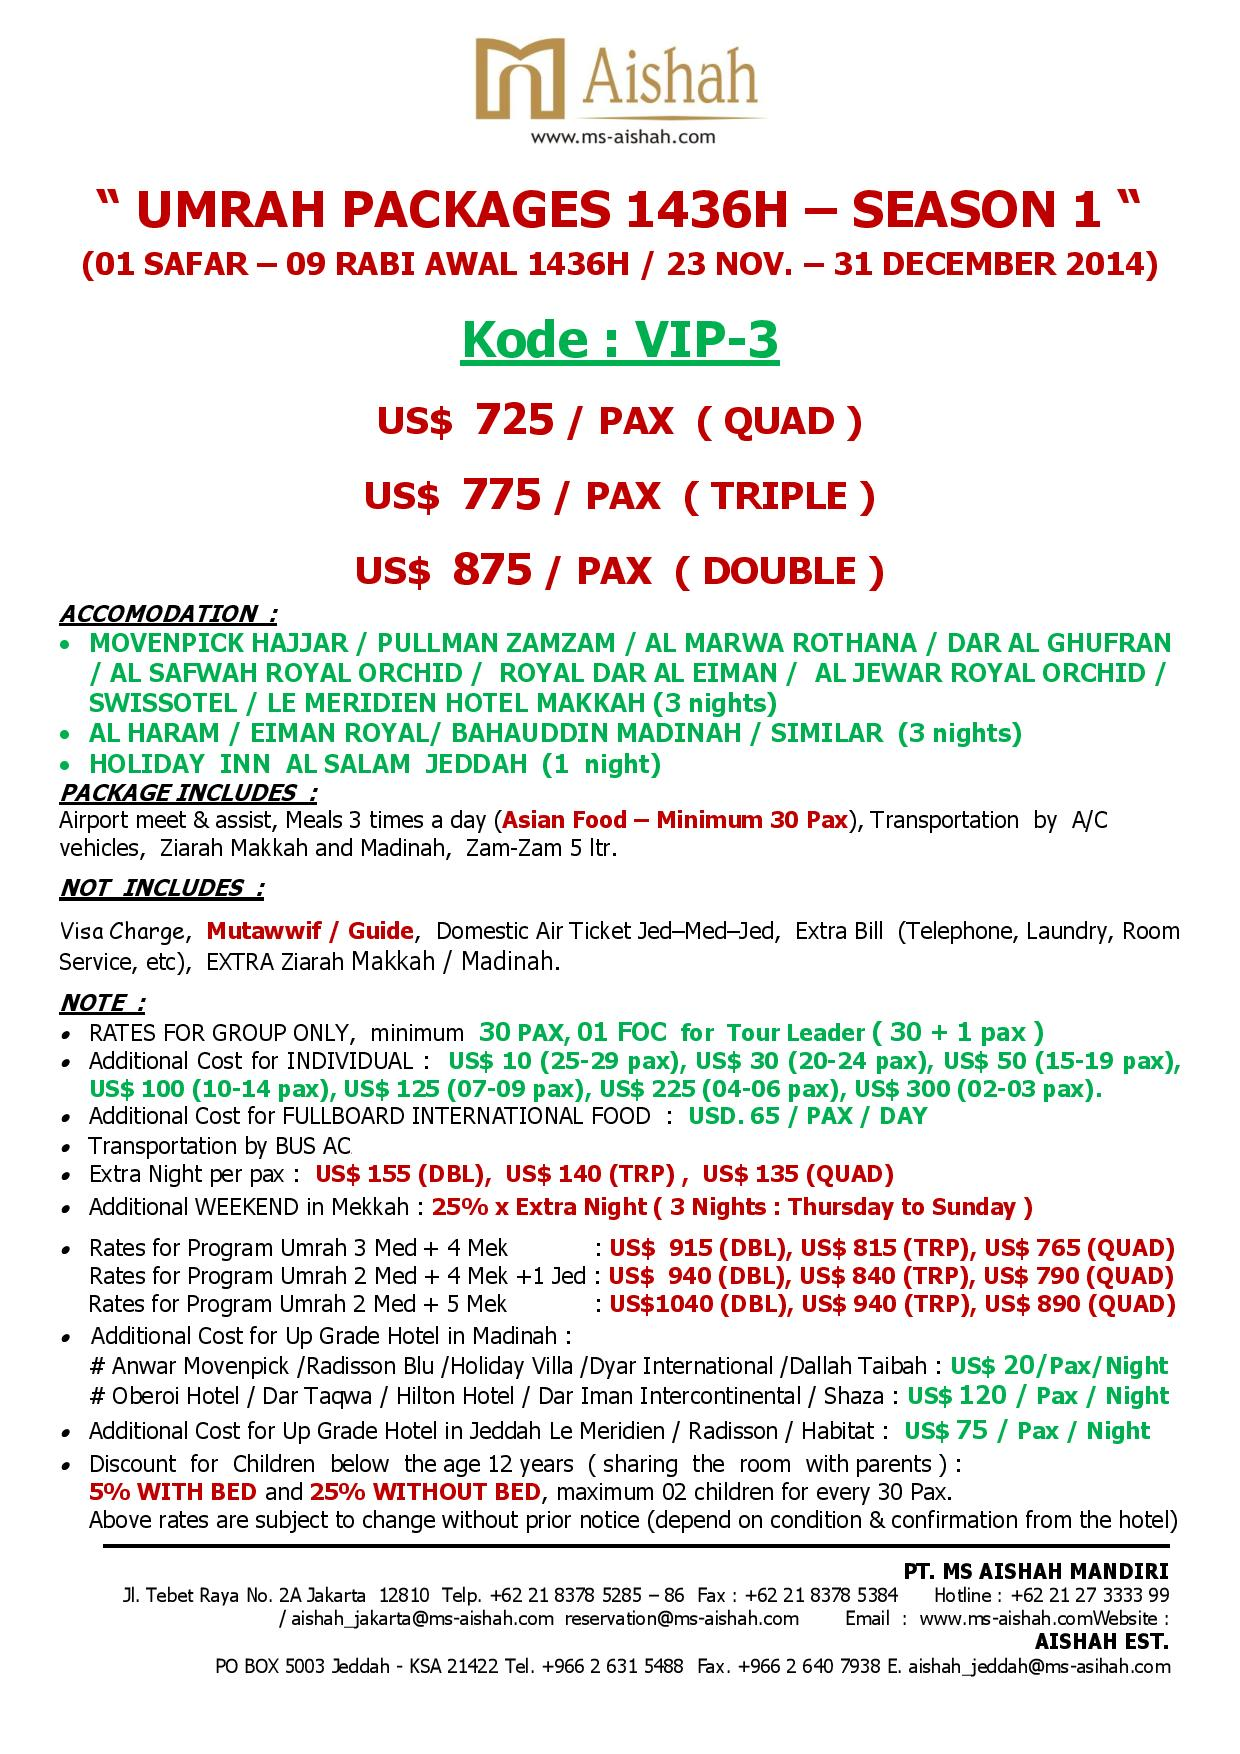 SPECIAL OFFER UMRAH 1436H SEASON 1 - 23 NOVEMBER - 31 DECEMBER 2014 -vip 3